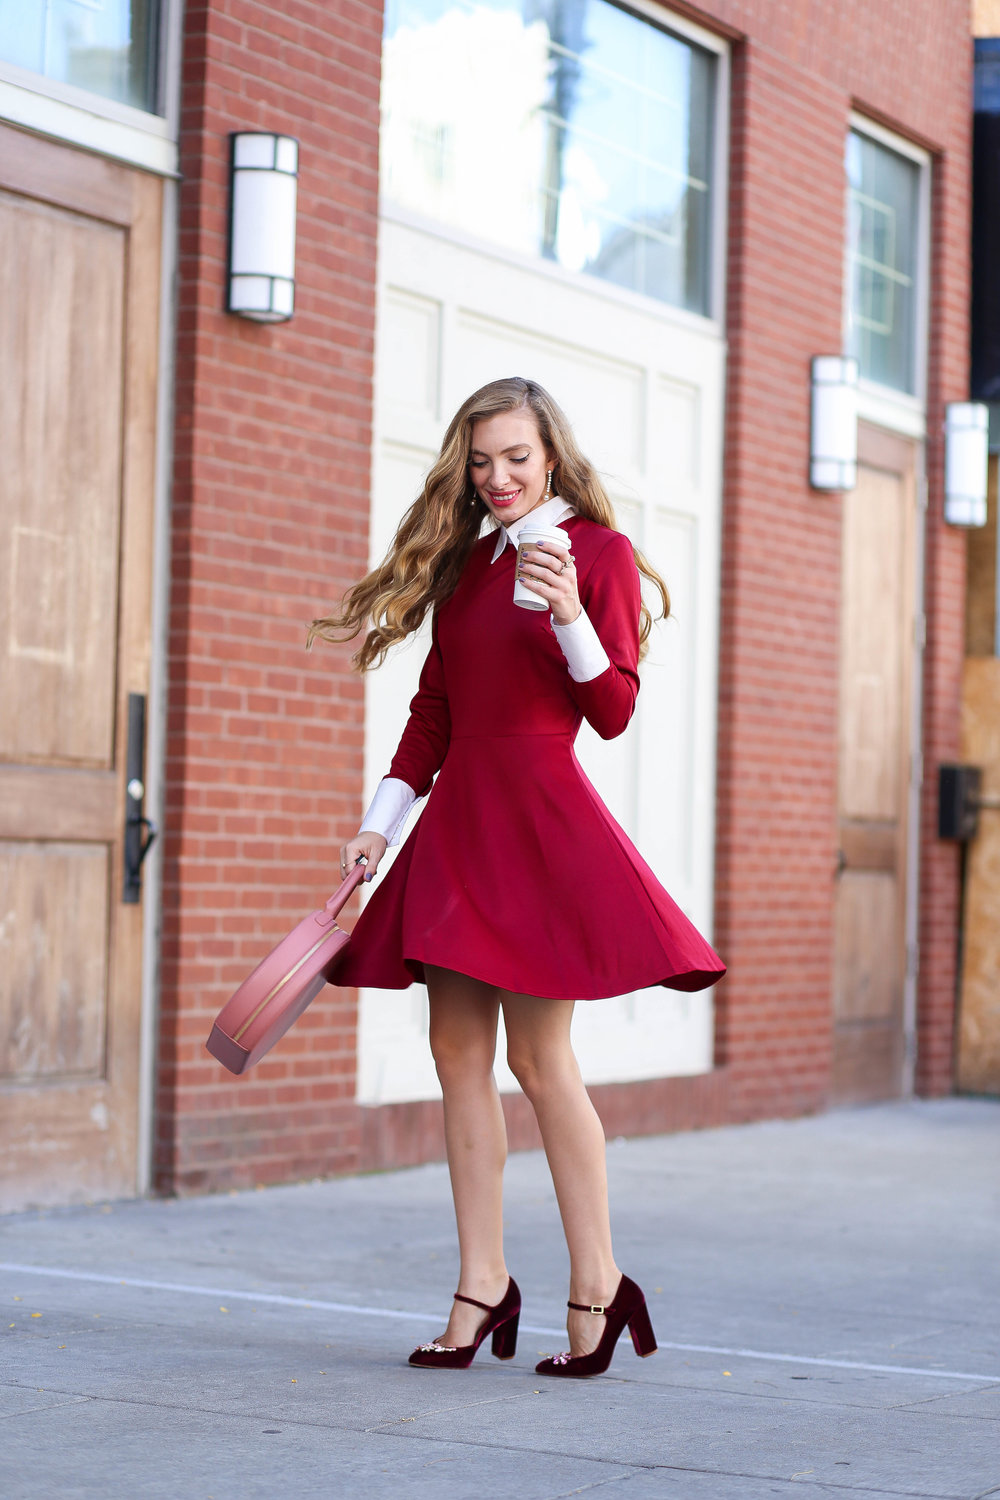 Burgundy Dress. Burgundy Heels. Blush Circle Bag. Fall Style. Mary Janes.